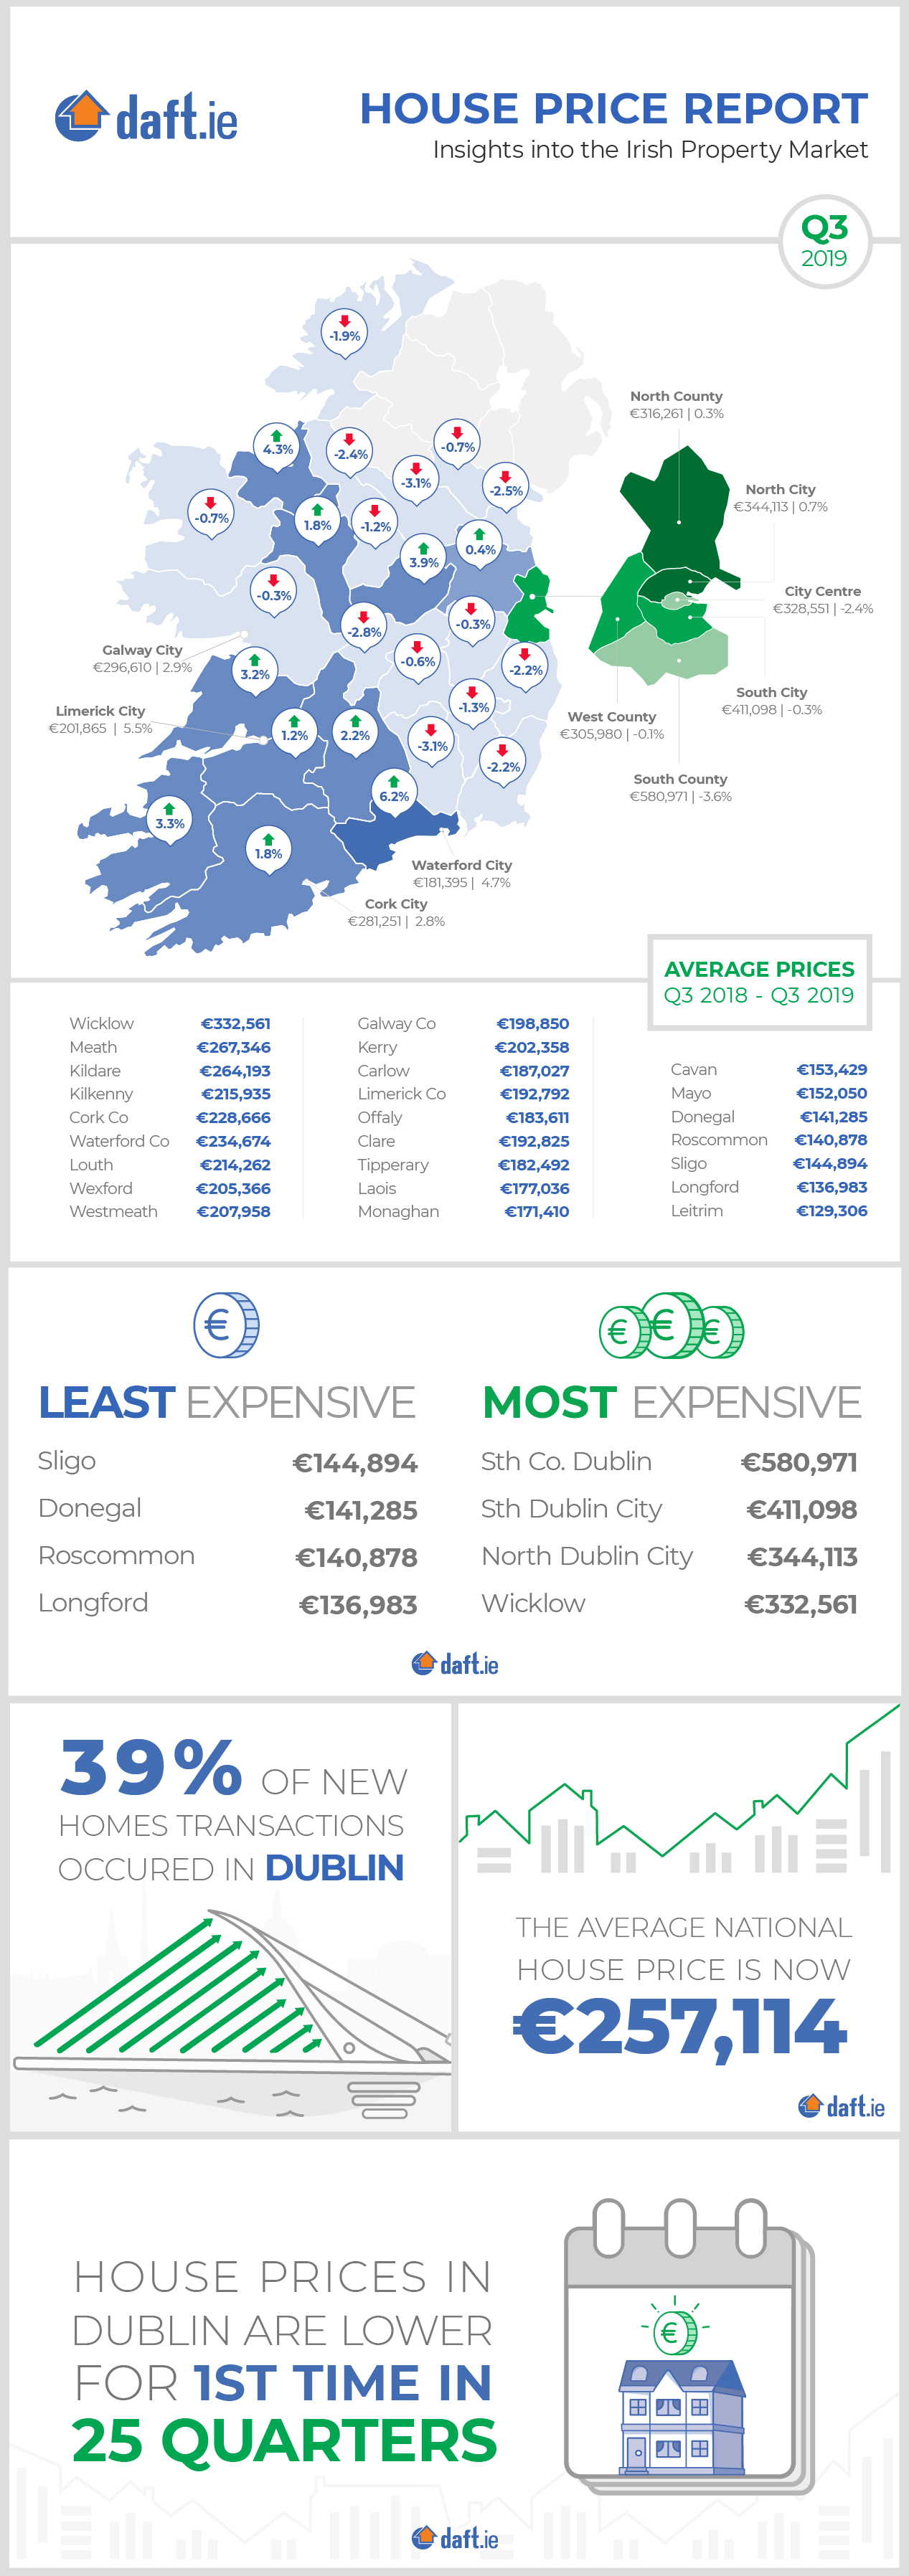 Daft.ie House Price Report: Q3 2019 Infographic